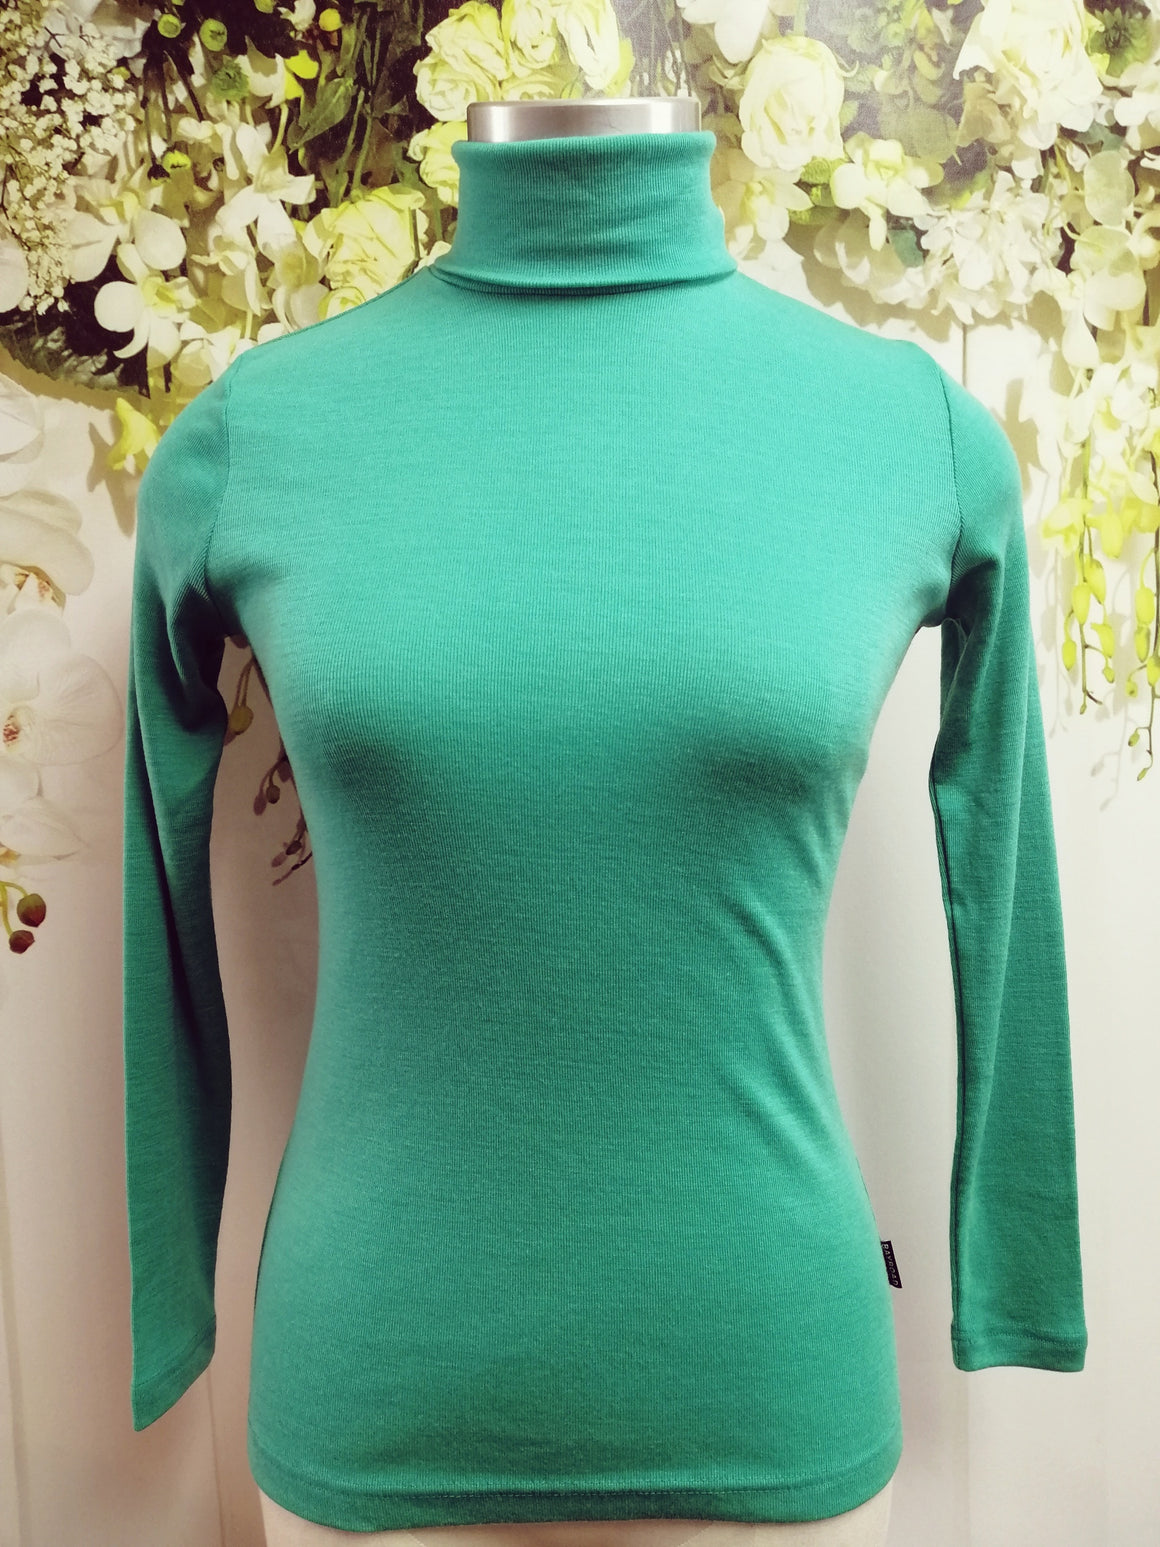 Bay Road Merino Polo Neck - Niagara (BR716) - Fashion Focus